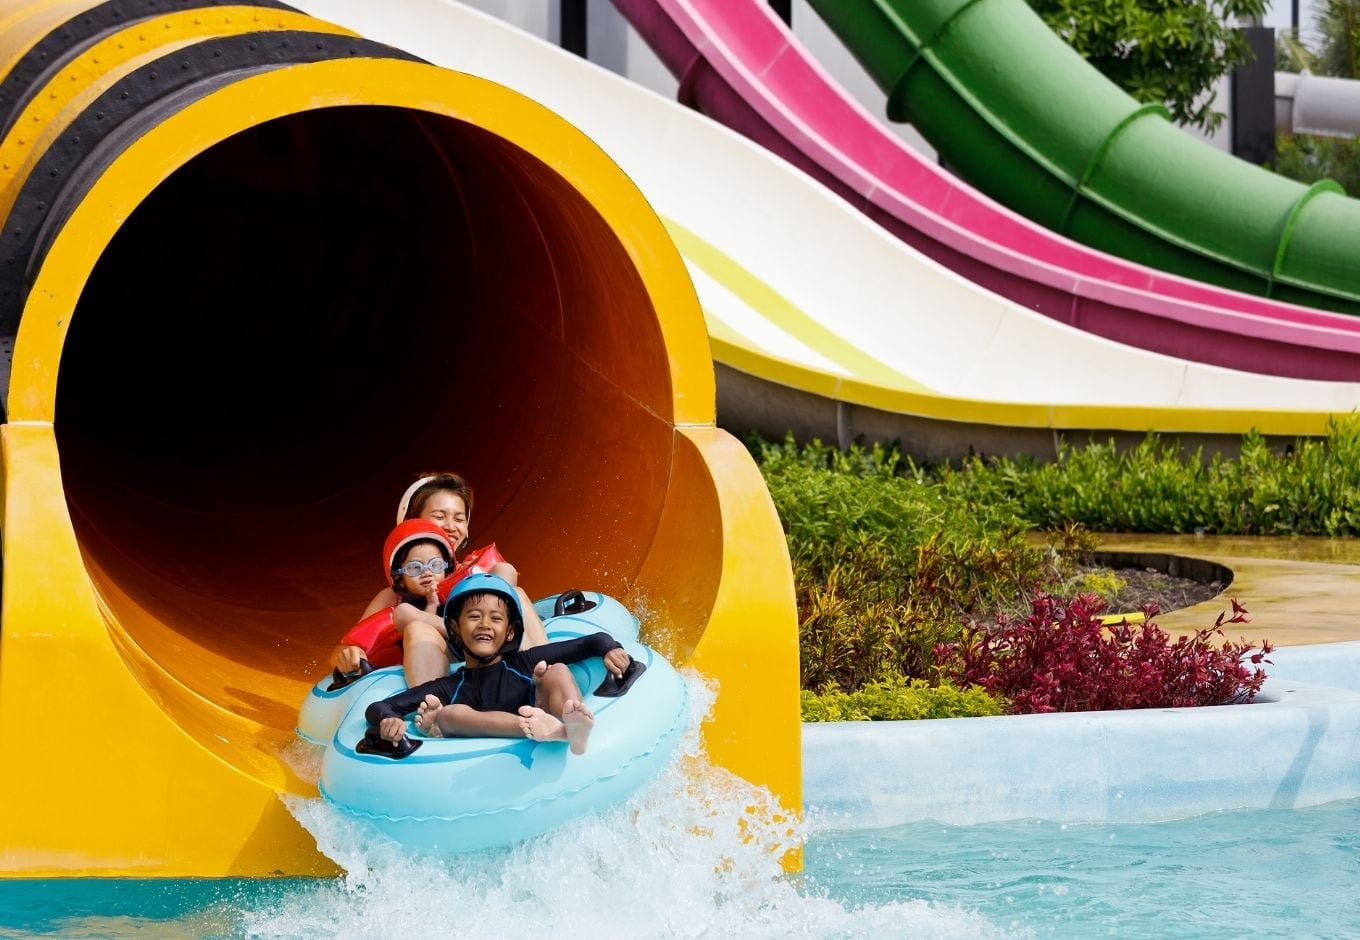 A mother and two kids sliding down a a giangt tube at a water park.